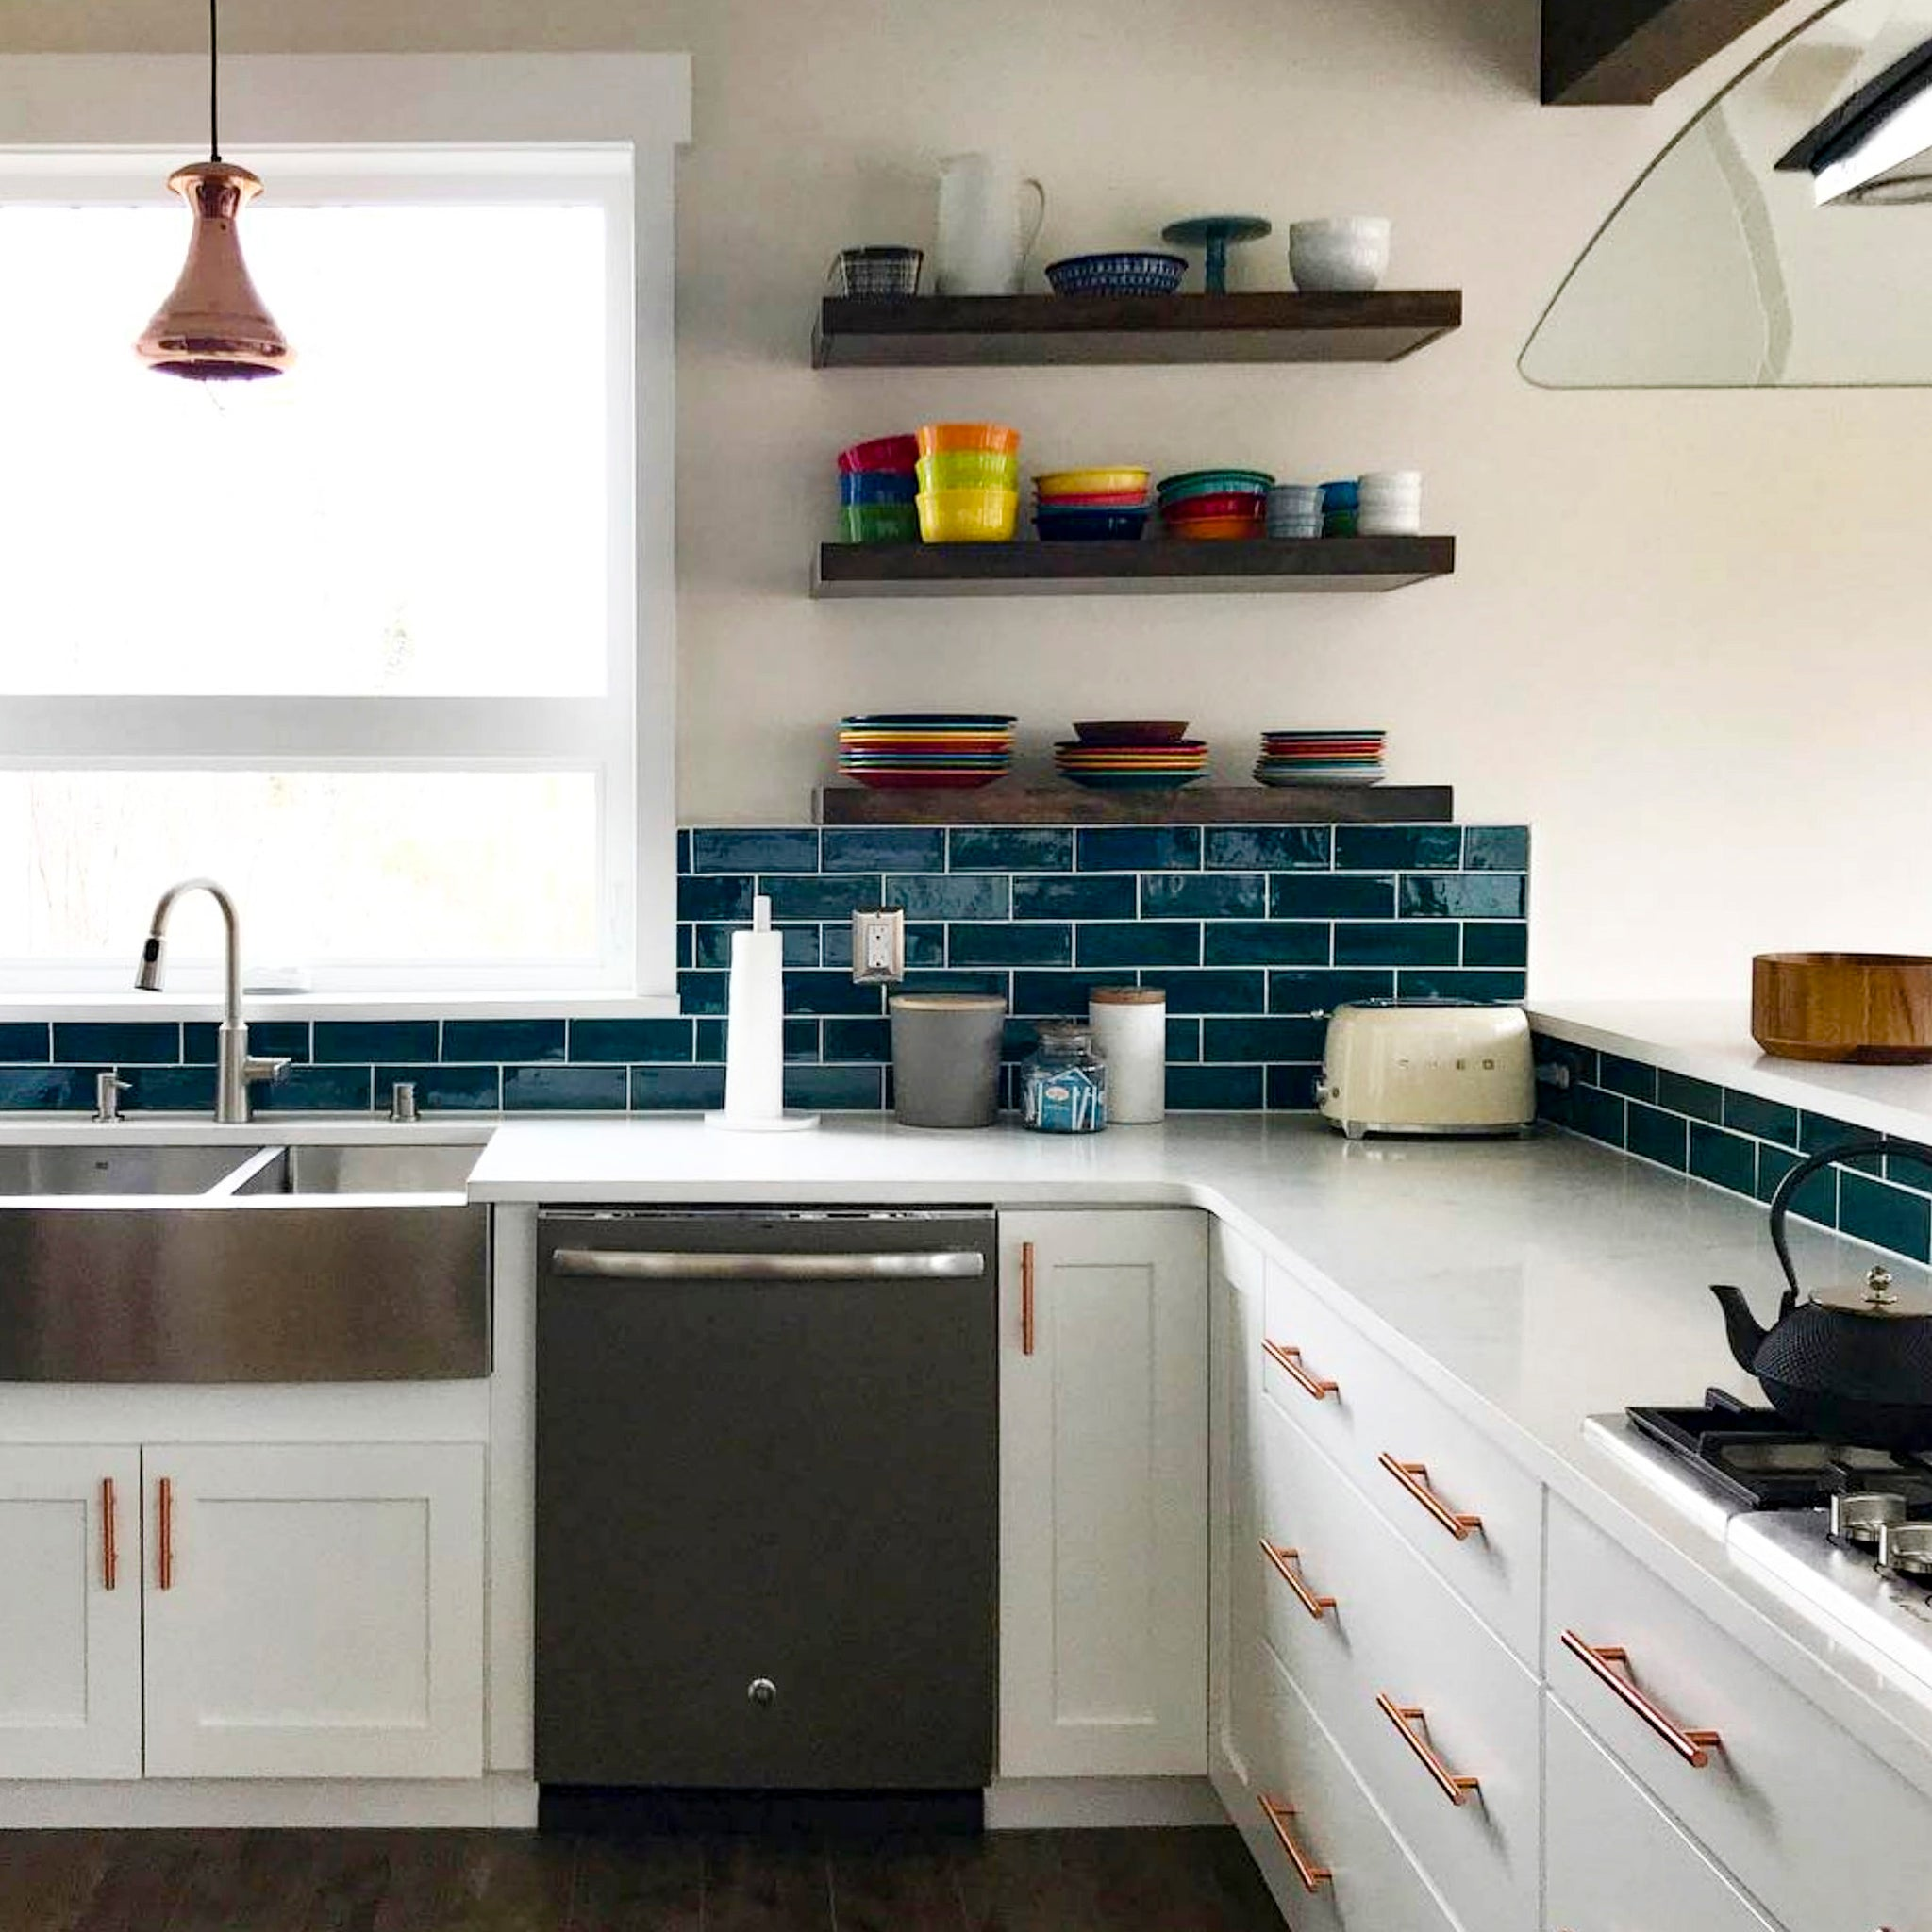 14 Tile + Open Shelving Designs: A Match Made In Heaven